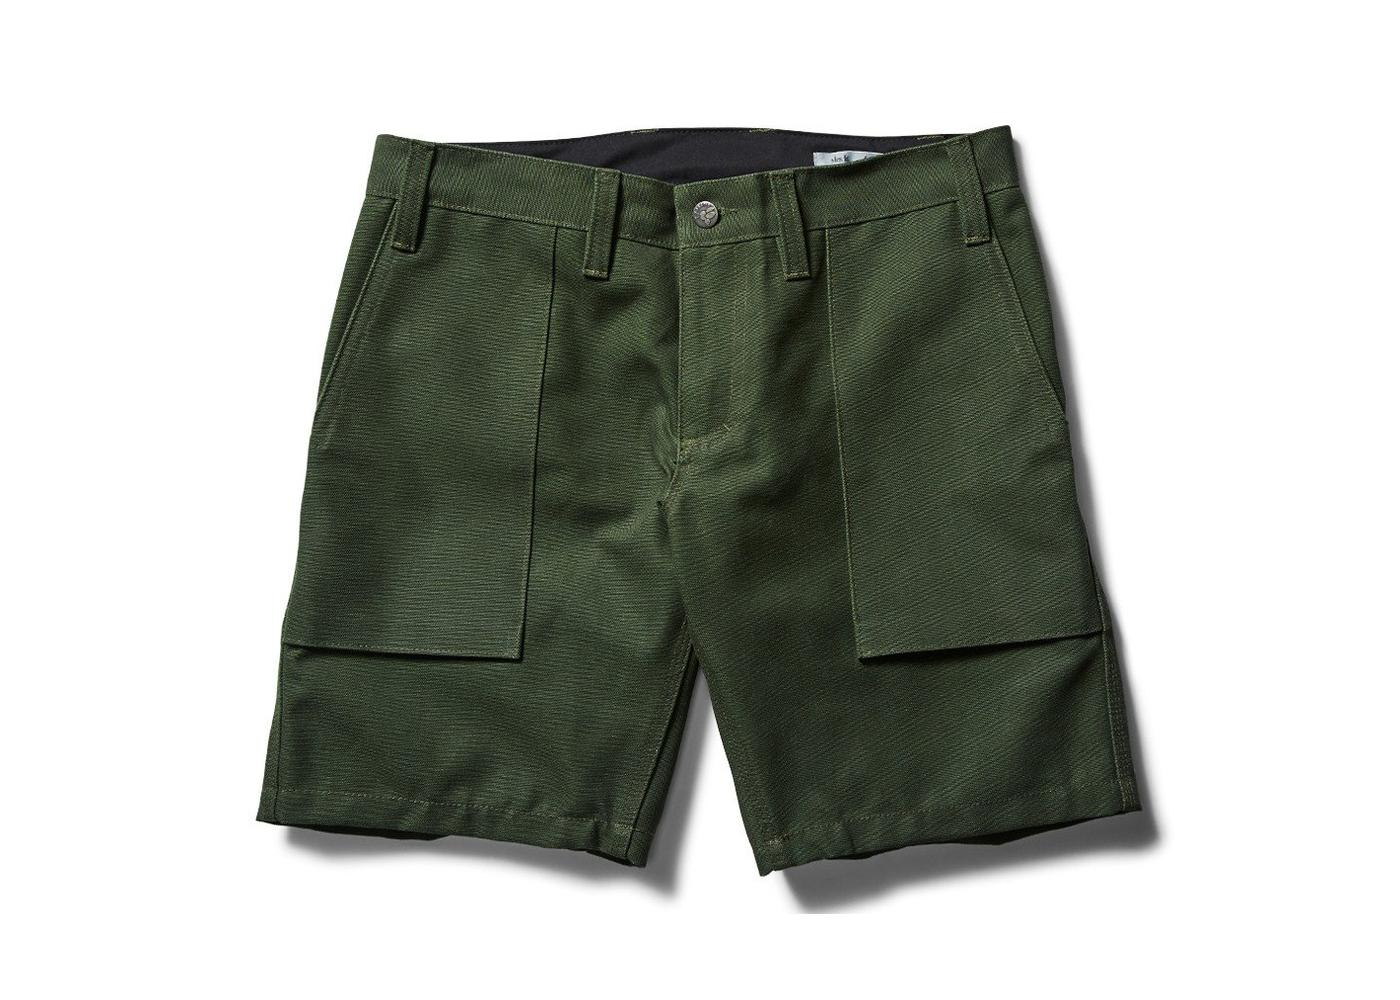 Swrve's _blk label Heavy Canvas Camp Shorts